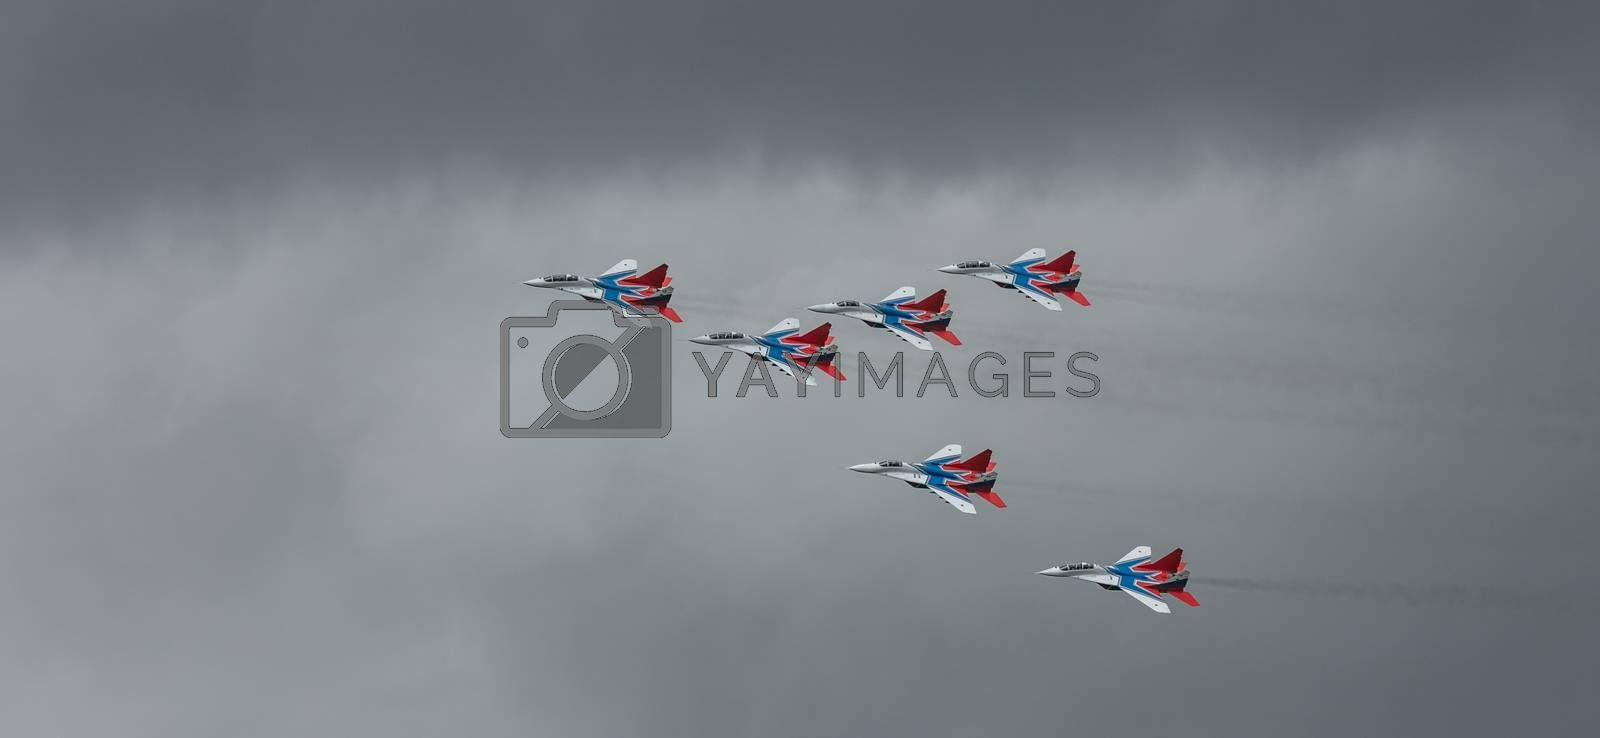 Barnaul, Russia - September 18, 2020: A low angle shot of Strizhi MiG-29 fighter jet squadron performing stunts during an aeroshow.